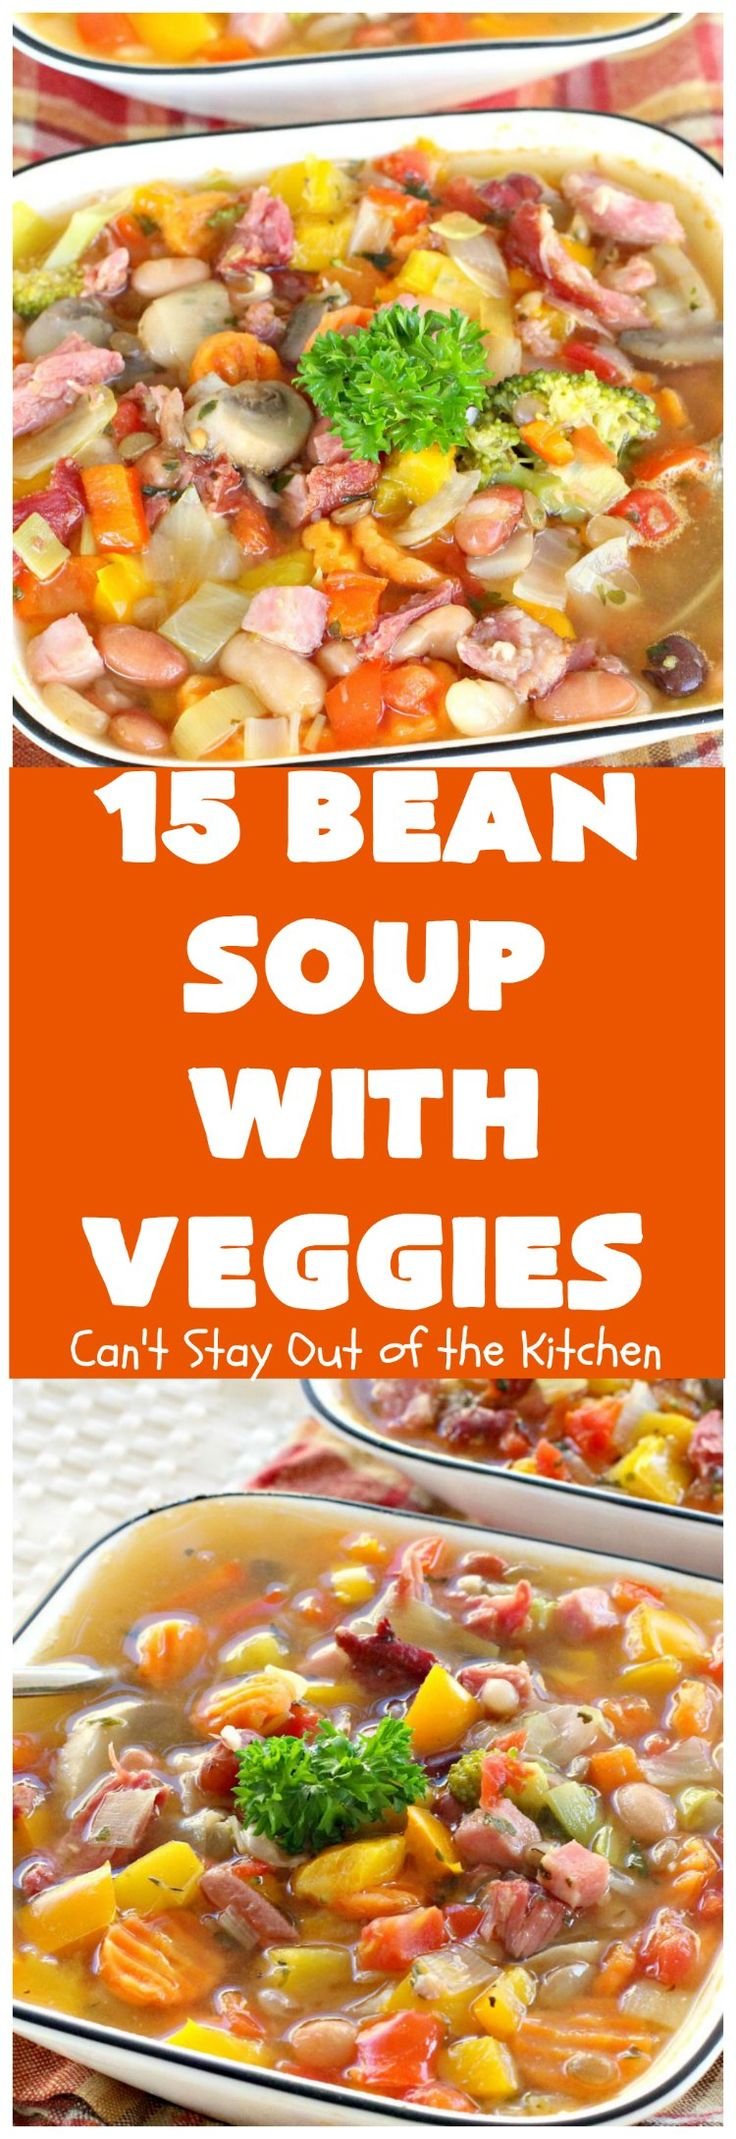 15 Bean Soup with Veggies | Can't Stay Out of the…